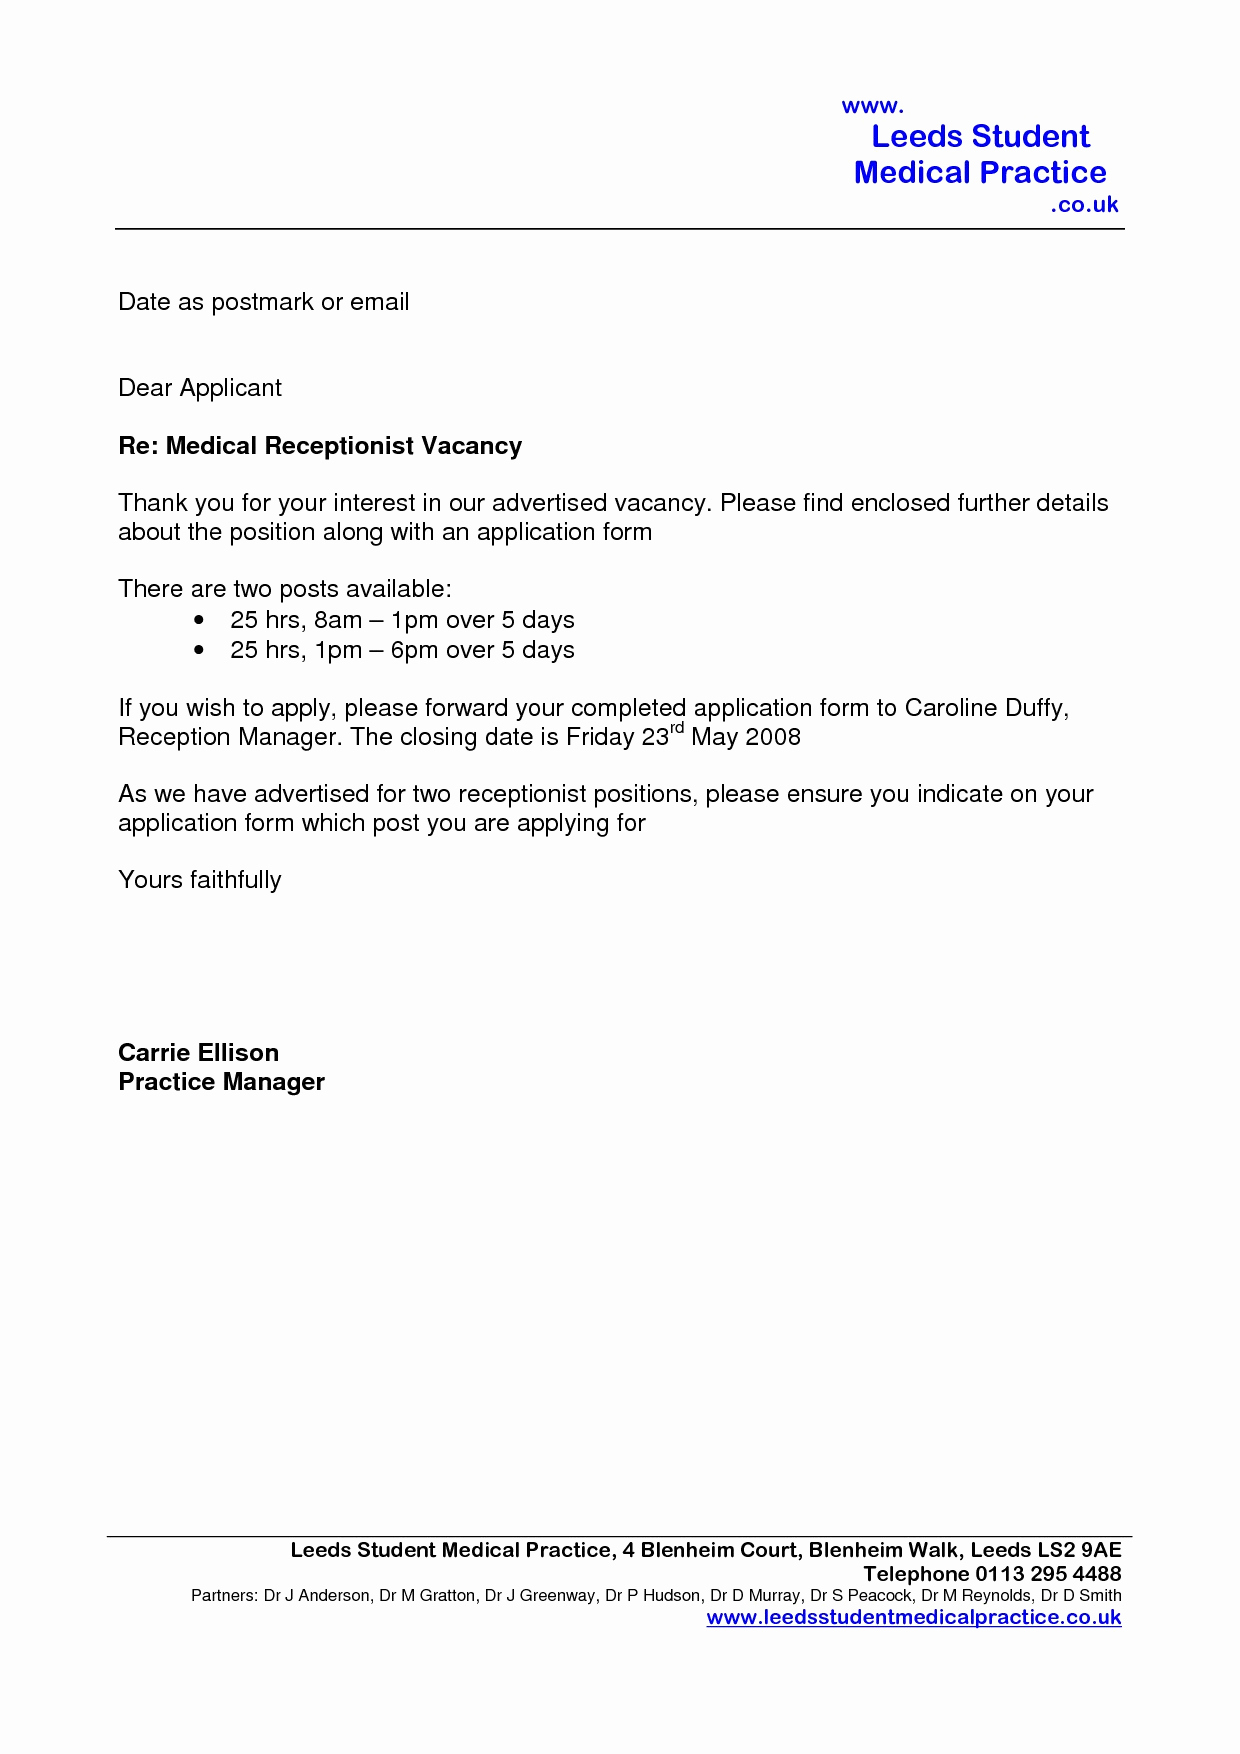 Cover Letter Template for Medical Office assistant - Administrative assistant Cover Letter Template Best Cover Letter